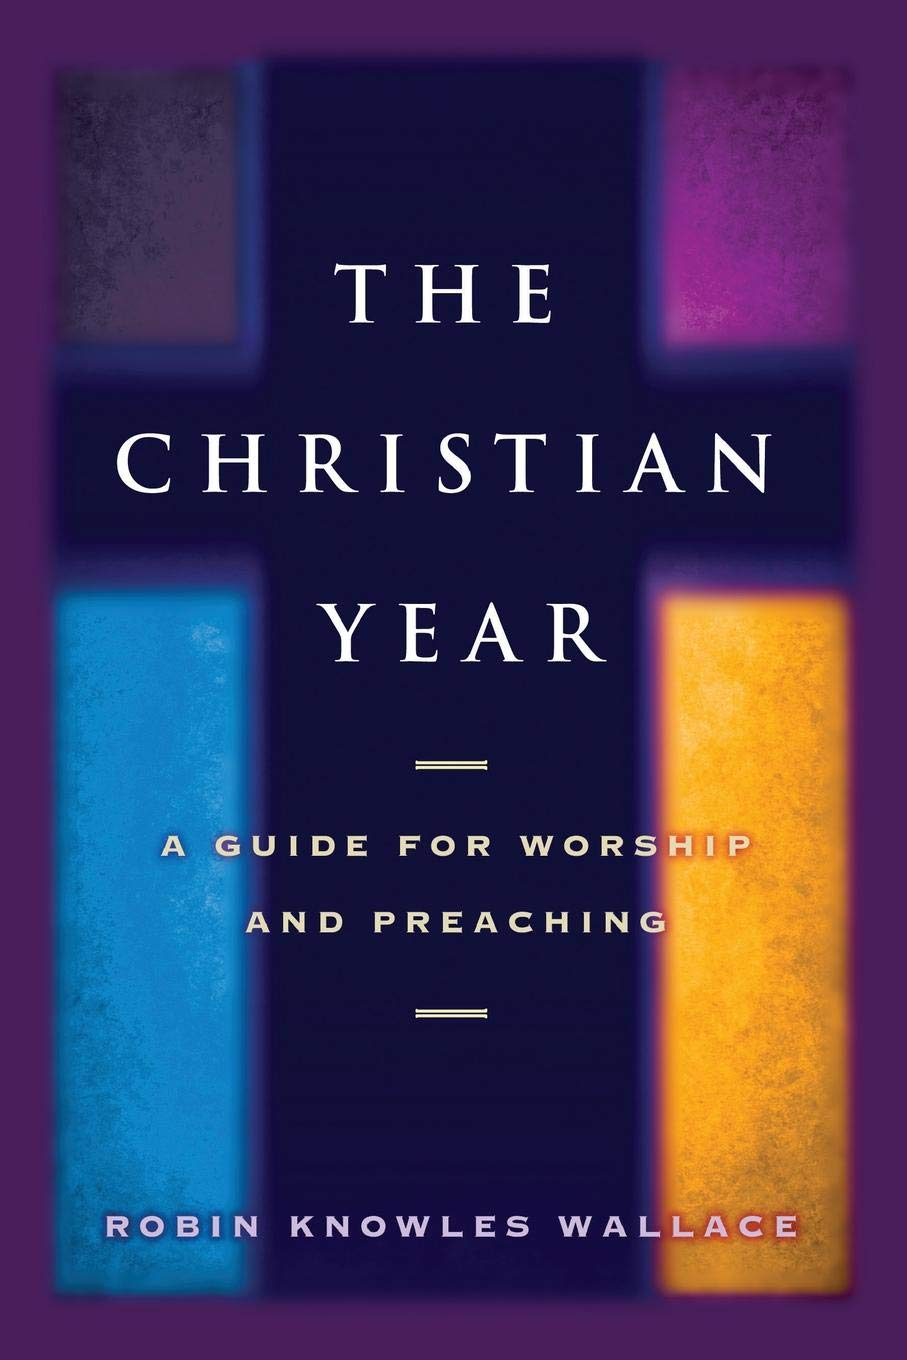 The Christian Year: A Guide for Worship and Preaching pdf